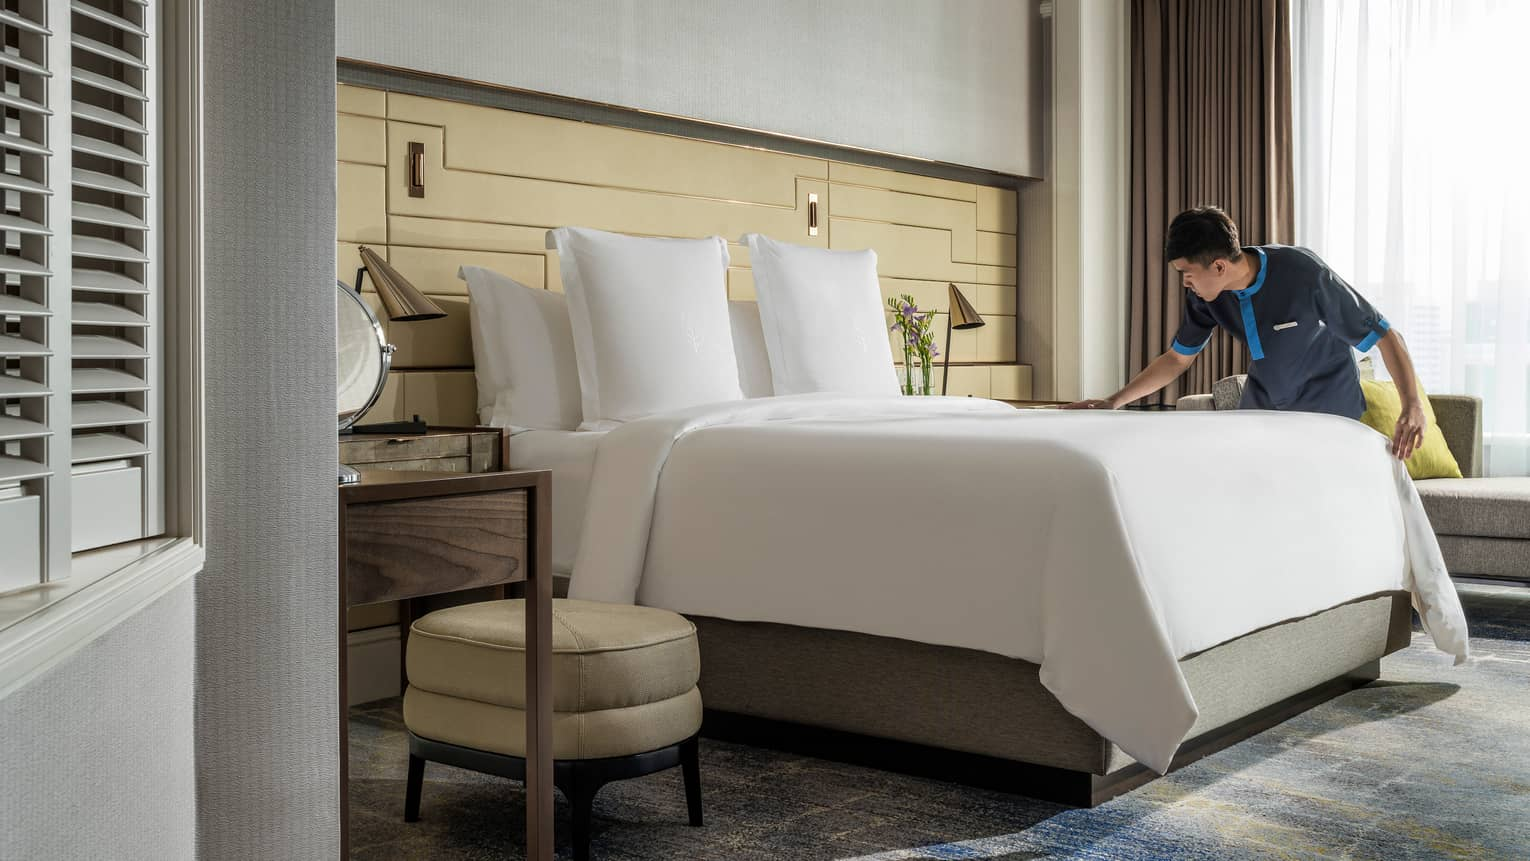 Hotel housekeeper smooths sheet, makes bed in sunny One Bedroom Suite